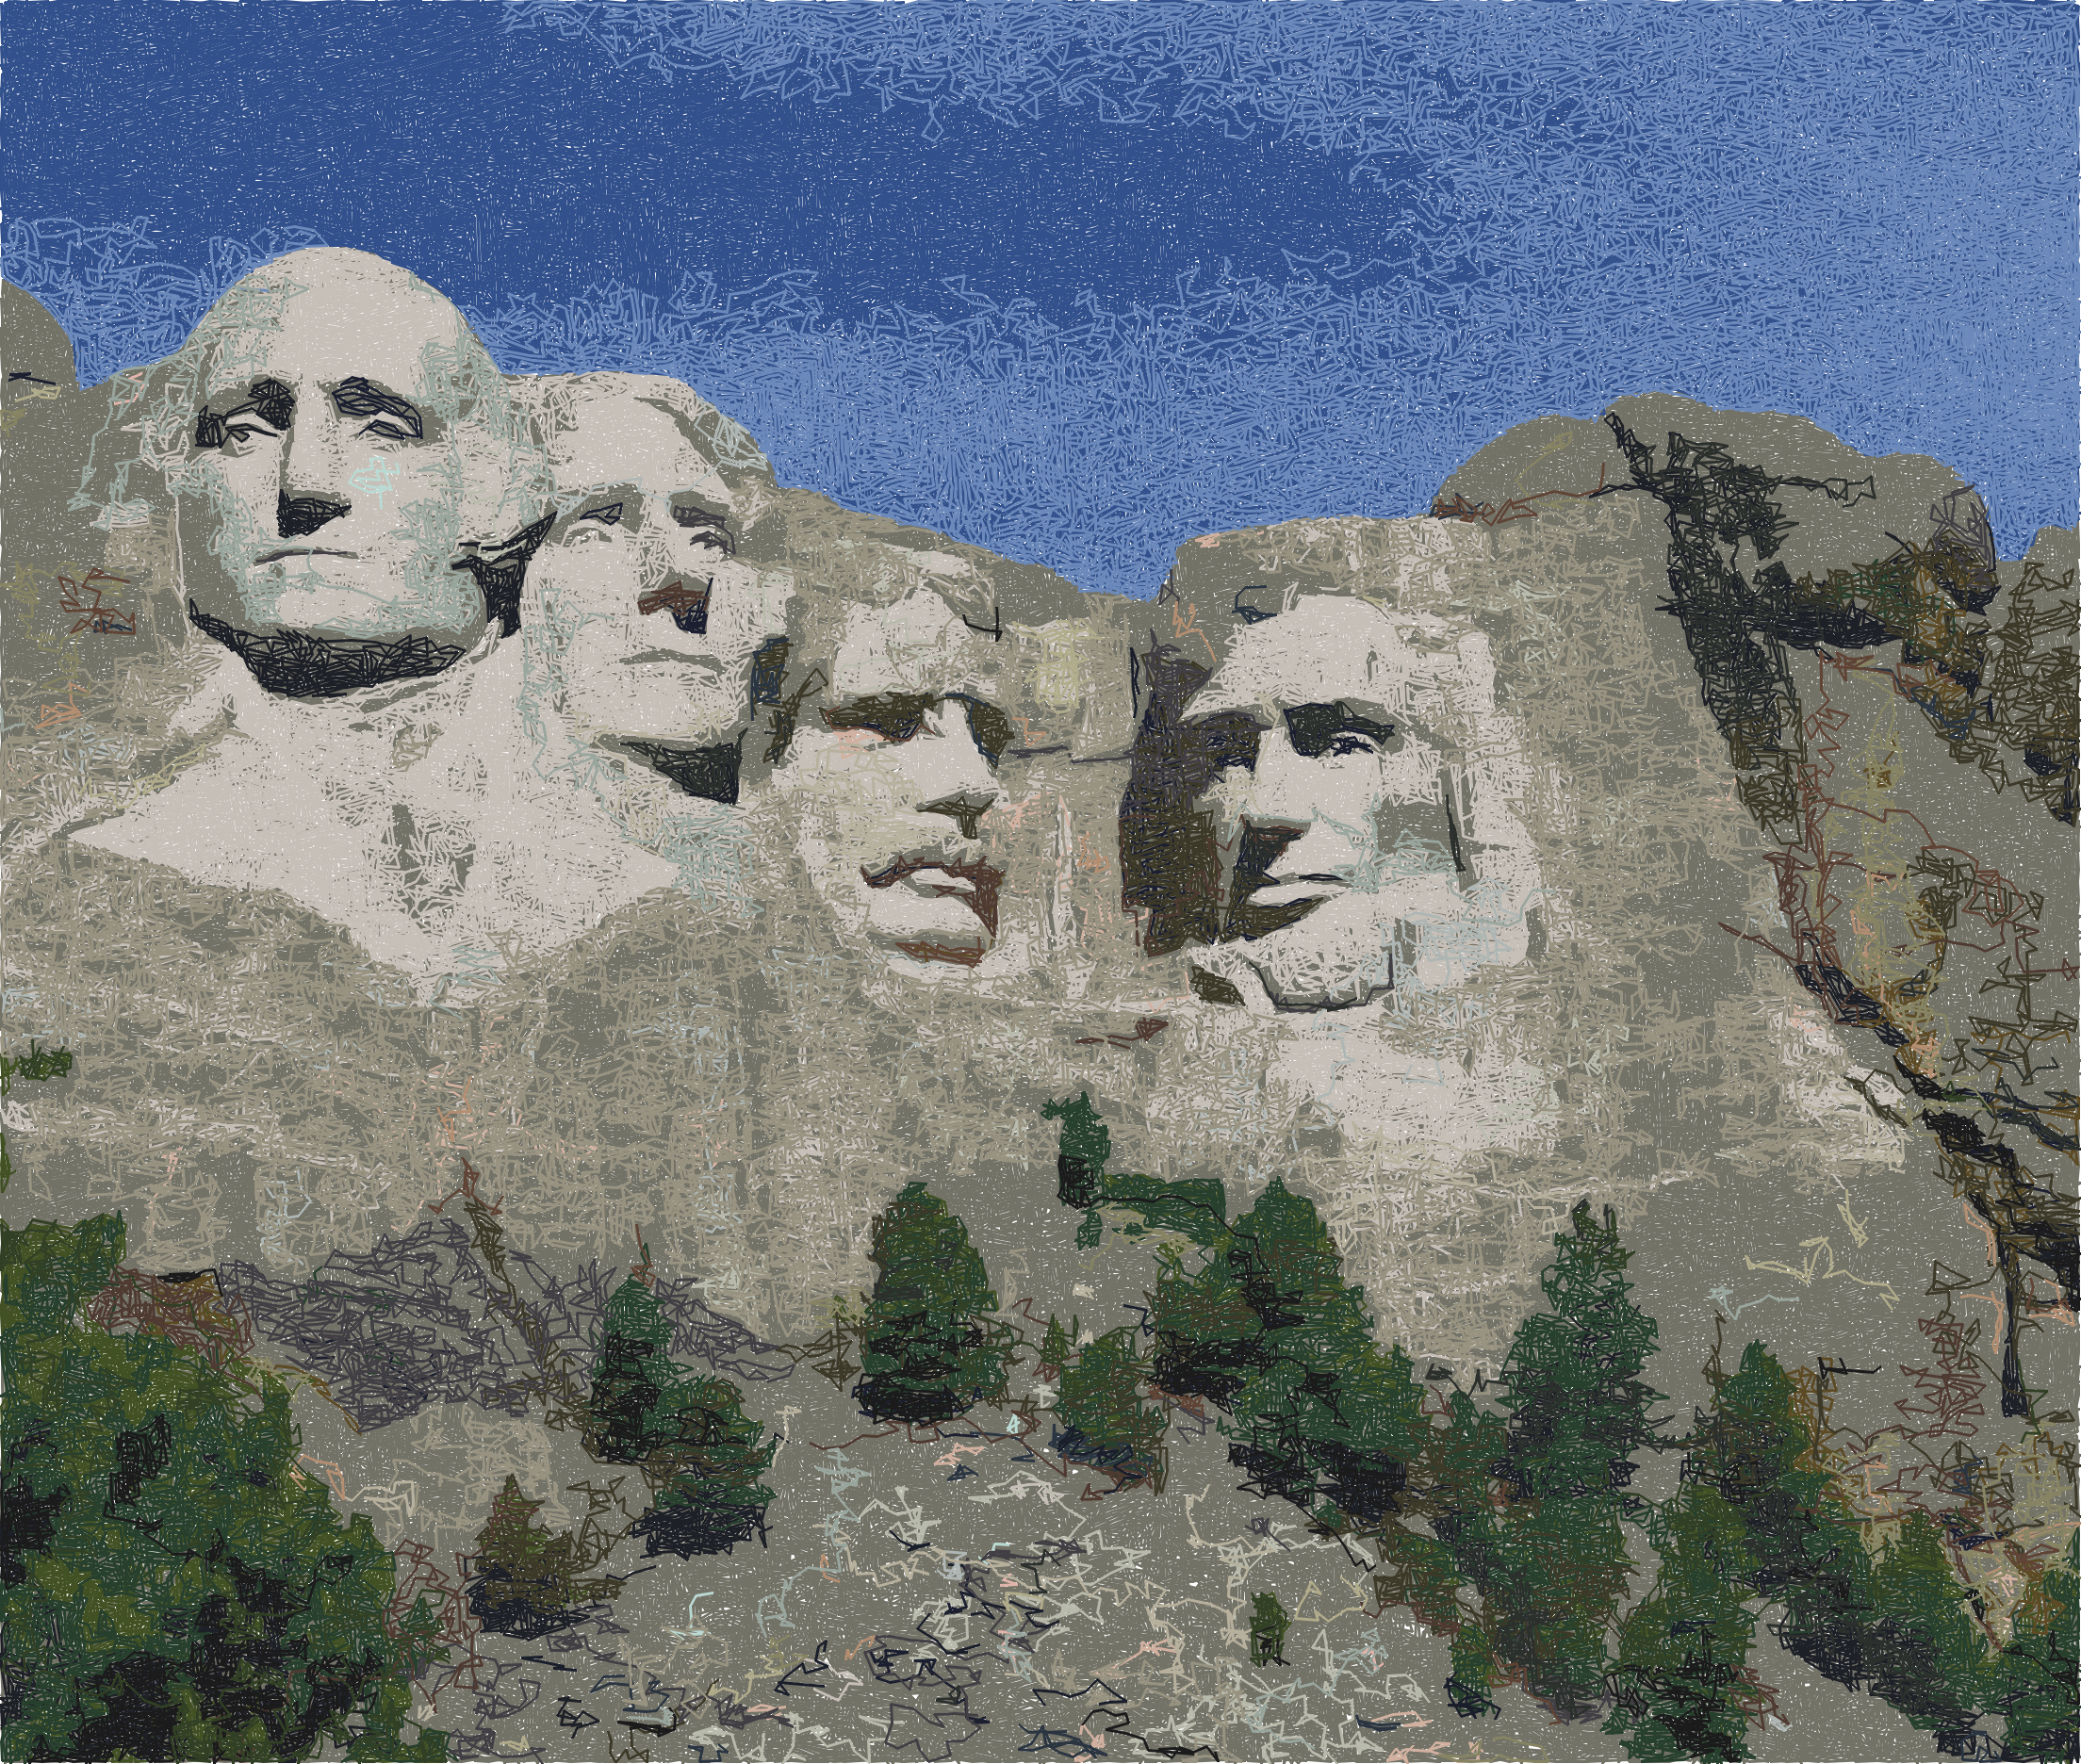 Rushmore simulation